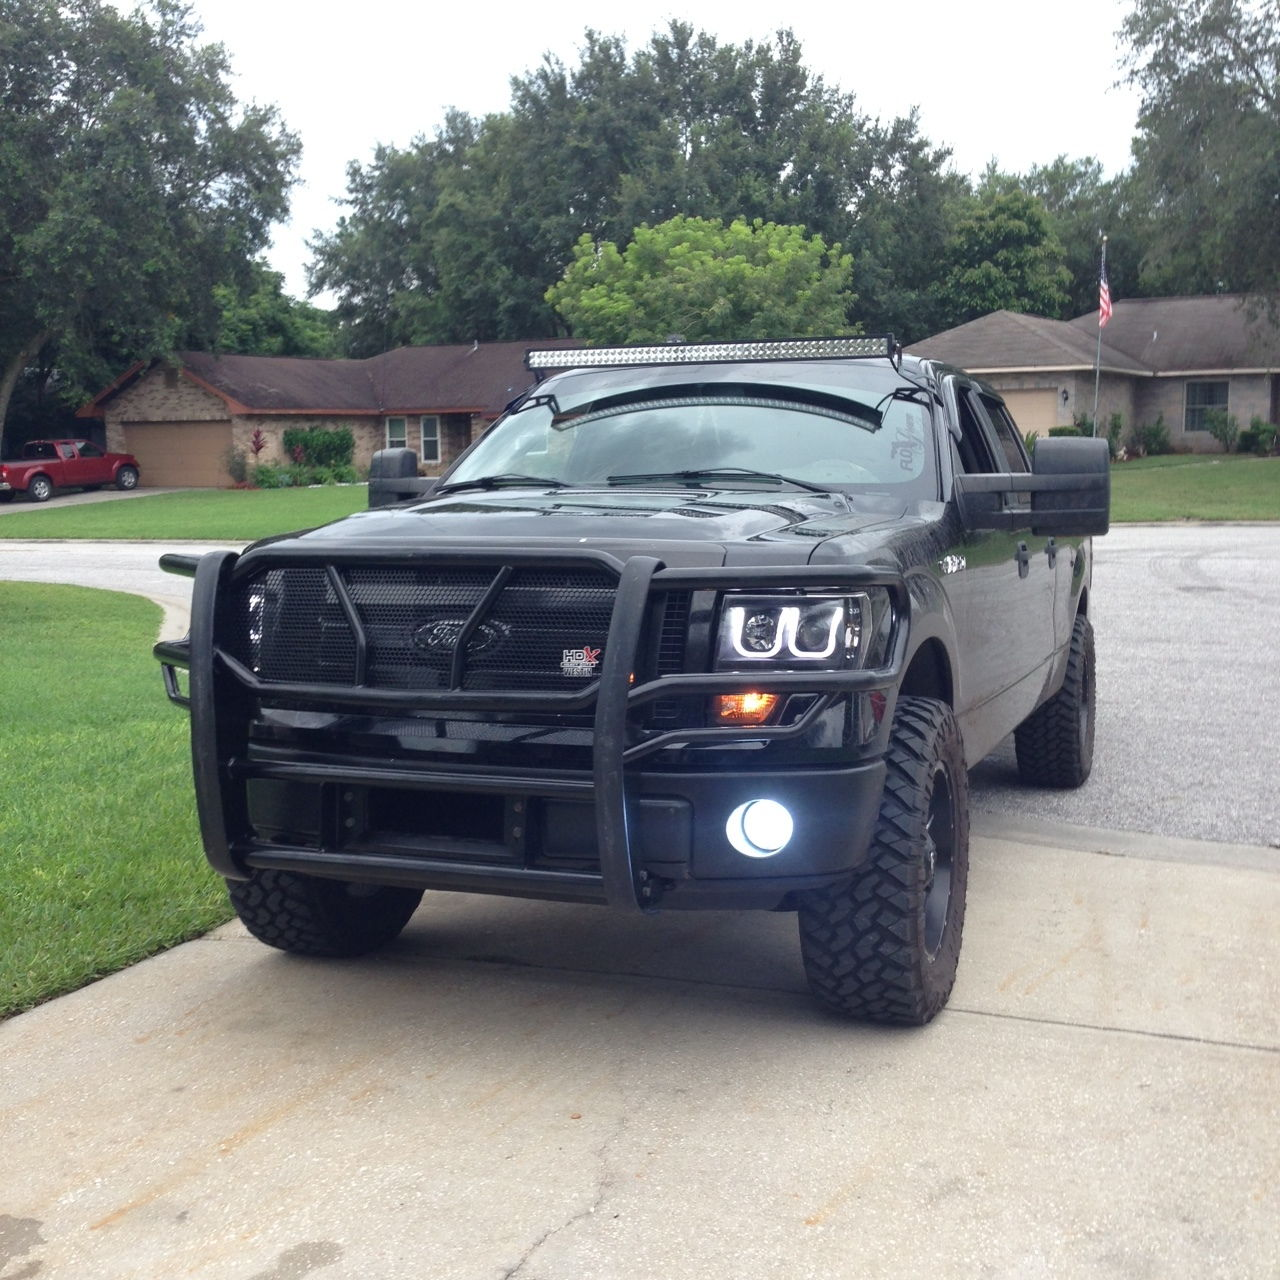 Toughest grill guard page 3 ford f150 forum community of ford truck fans